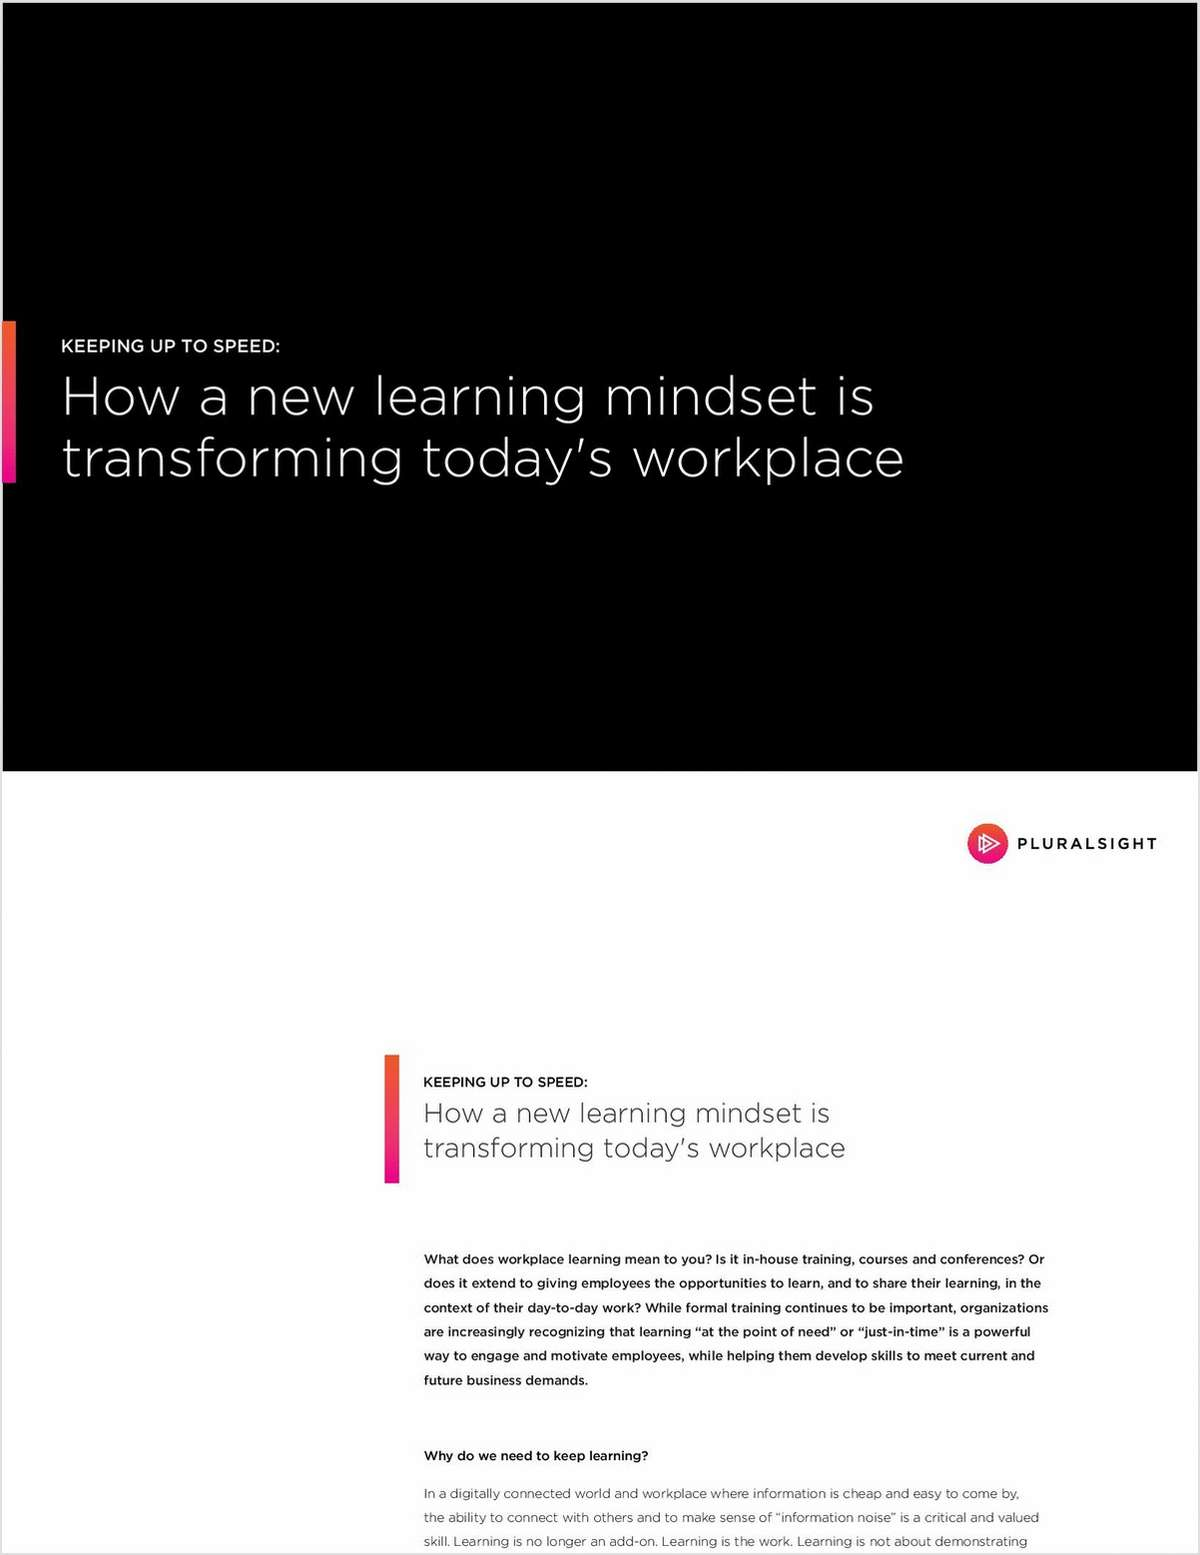 How a New Learning Mindset is Transforming Today's Workplace